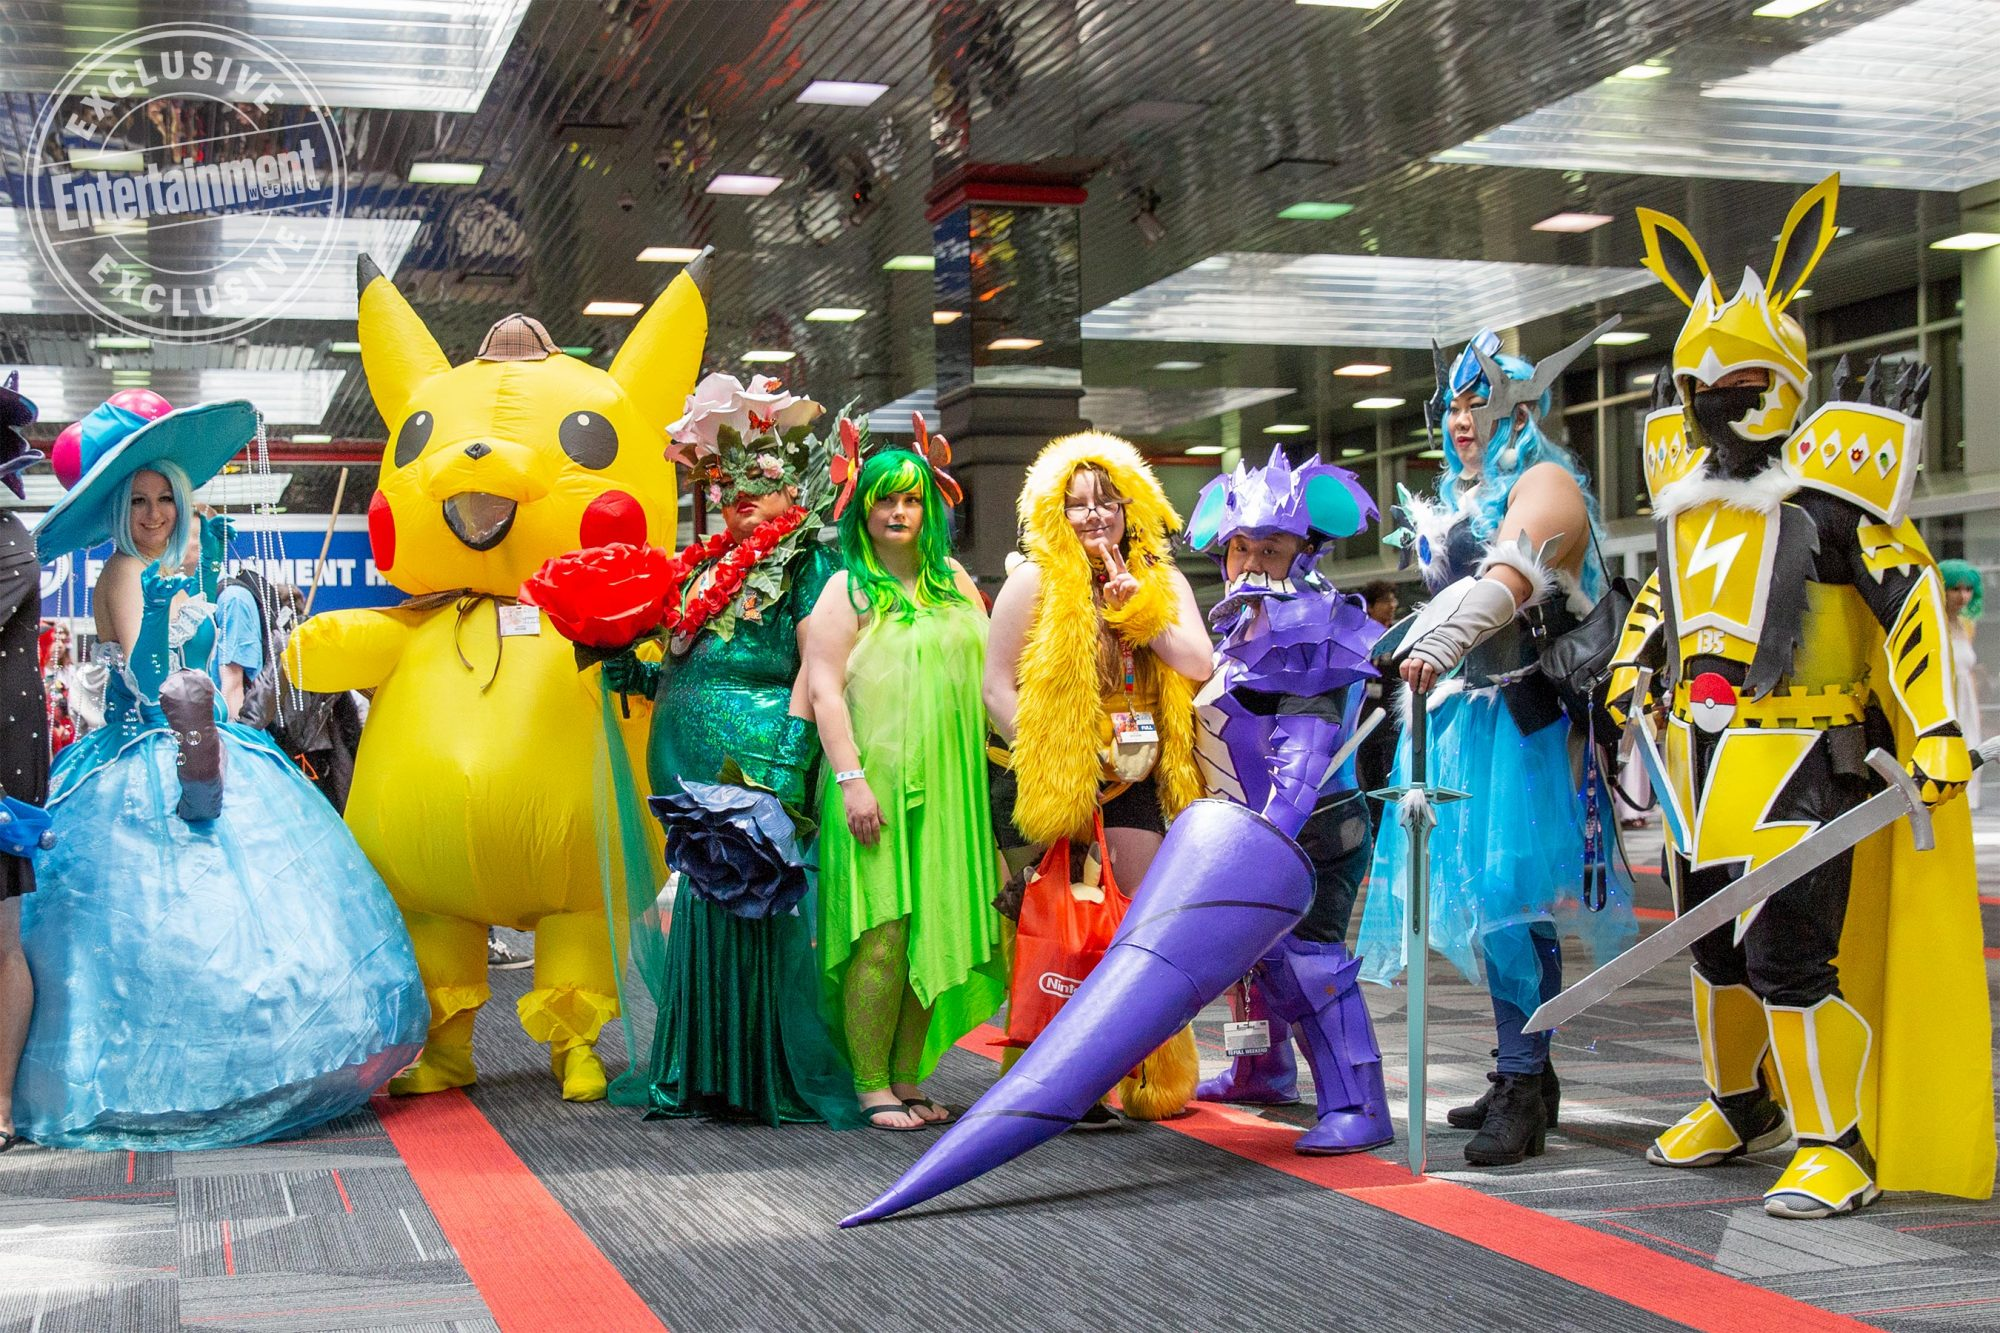 Anime Central 2019 cosplayers photographed on May 18th and 19th in Chicago, IL by Chris Cosgrove for Entertainment Weekly. -- Pictured: Pokemon cosplayers